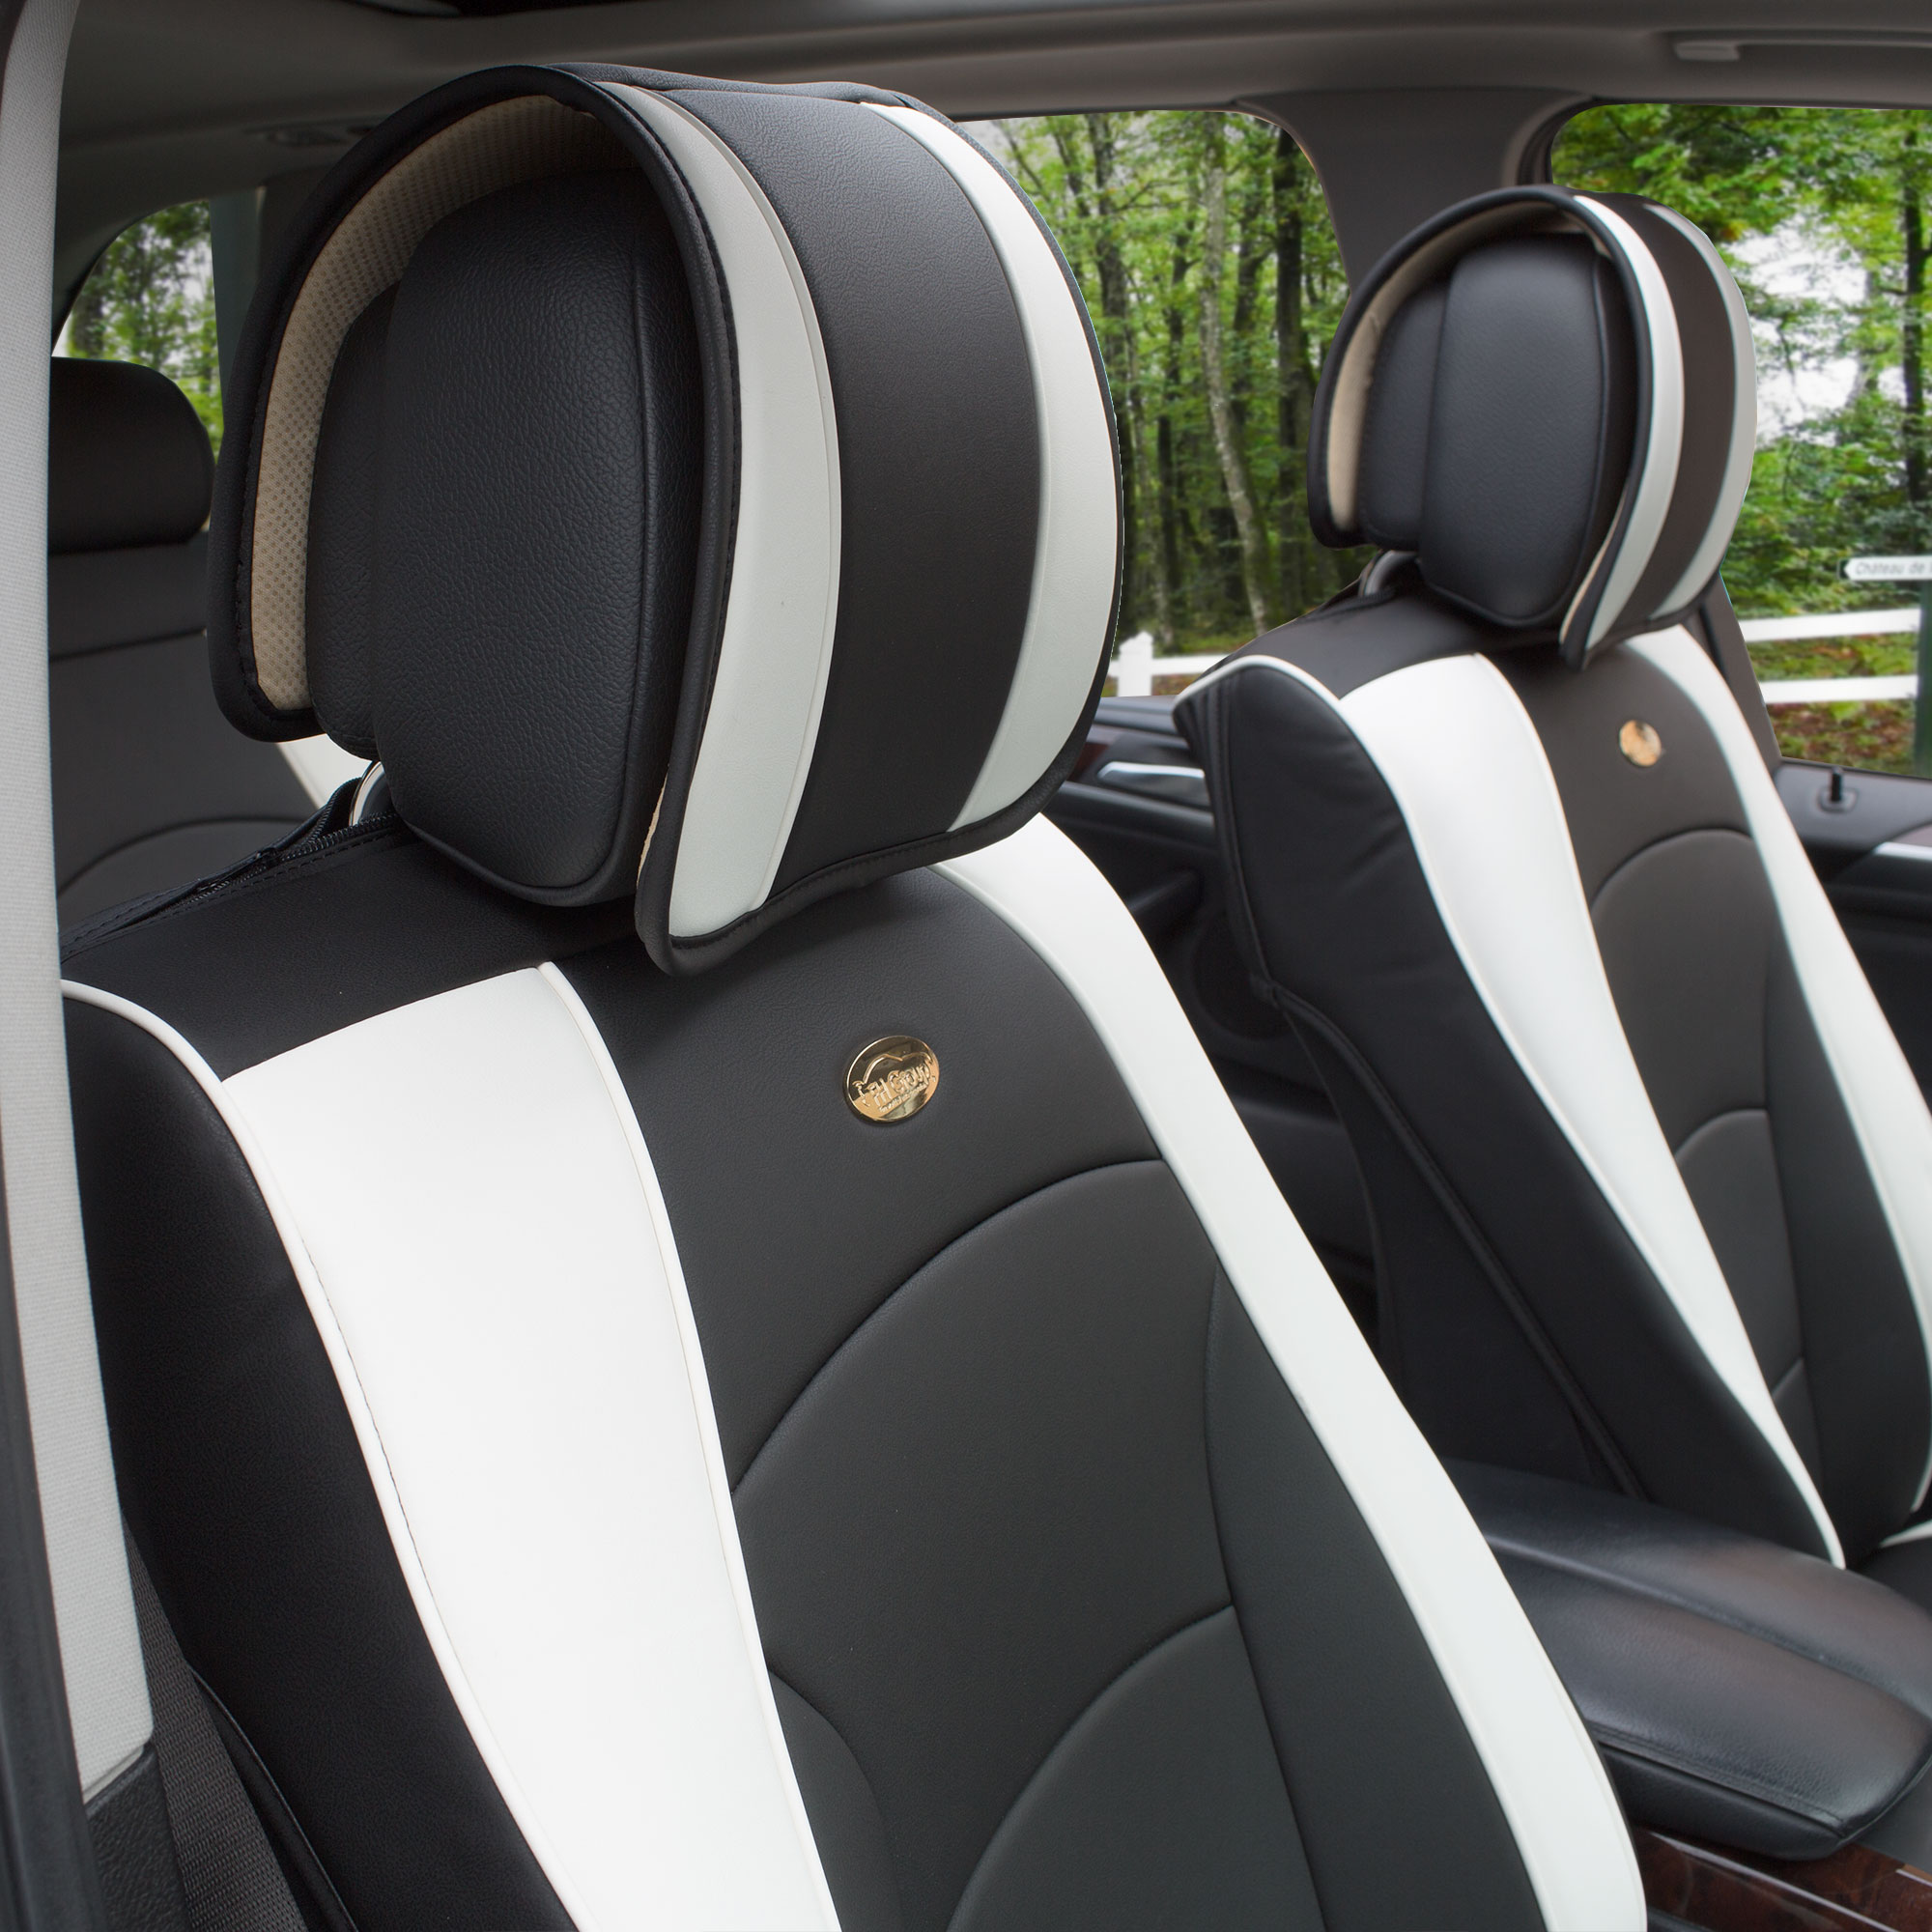 Luxury-Leather-Seat-Cushion-Covers-Front-Bucket-Pair-11-Color-Options thumbnail 39